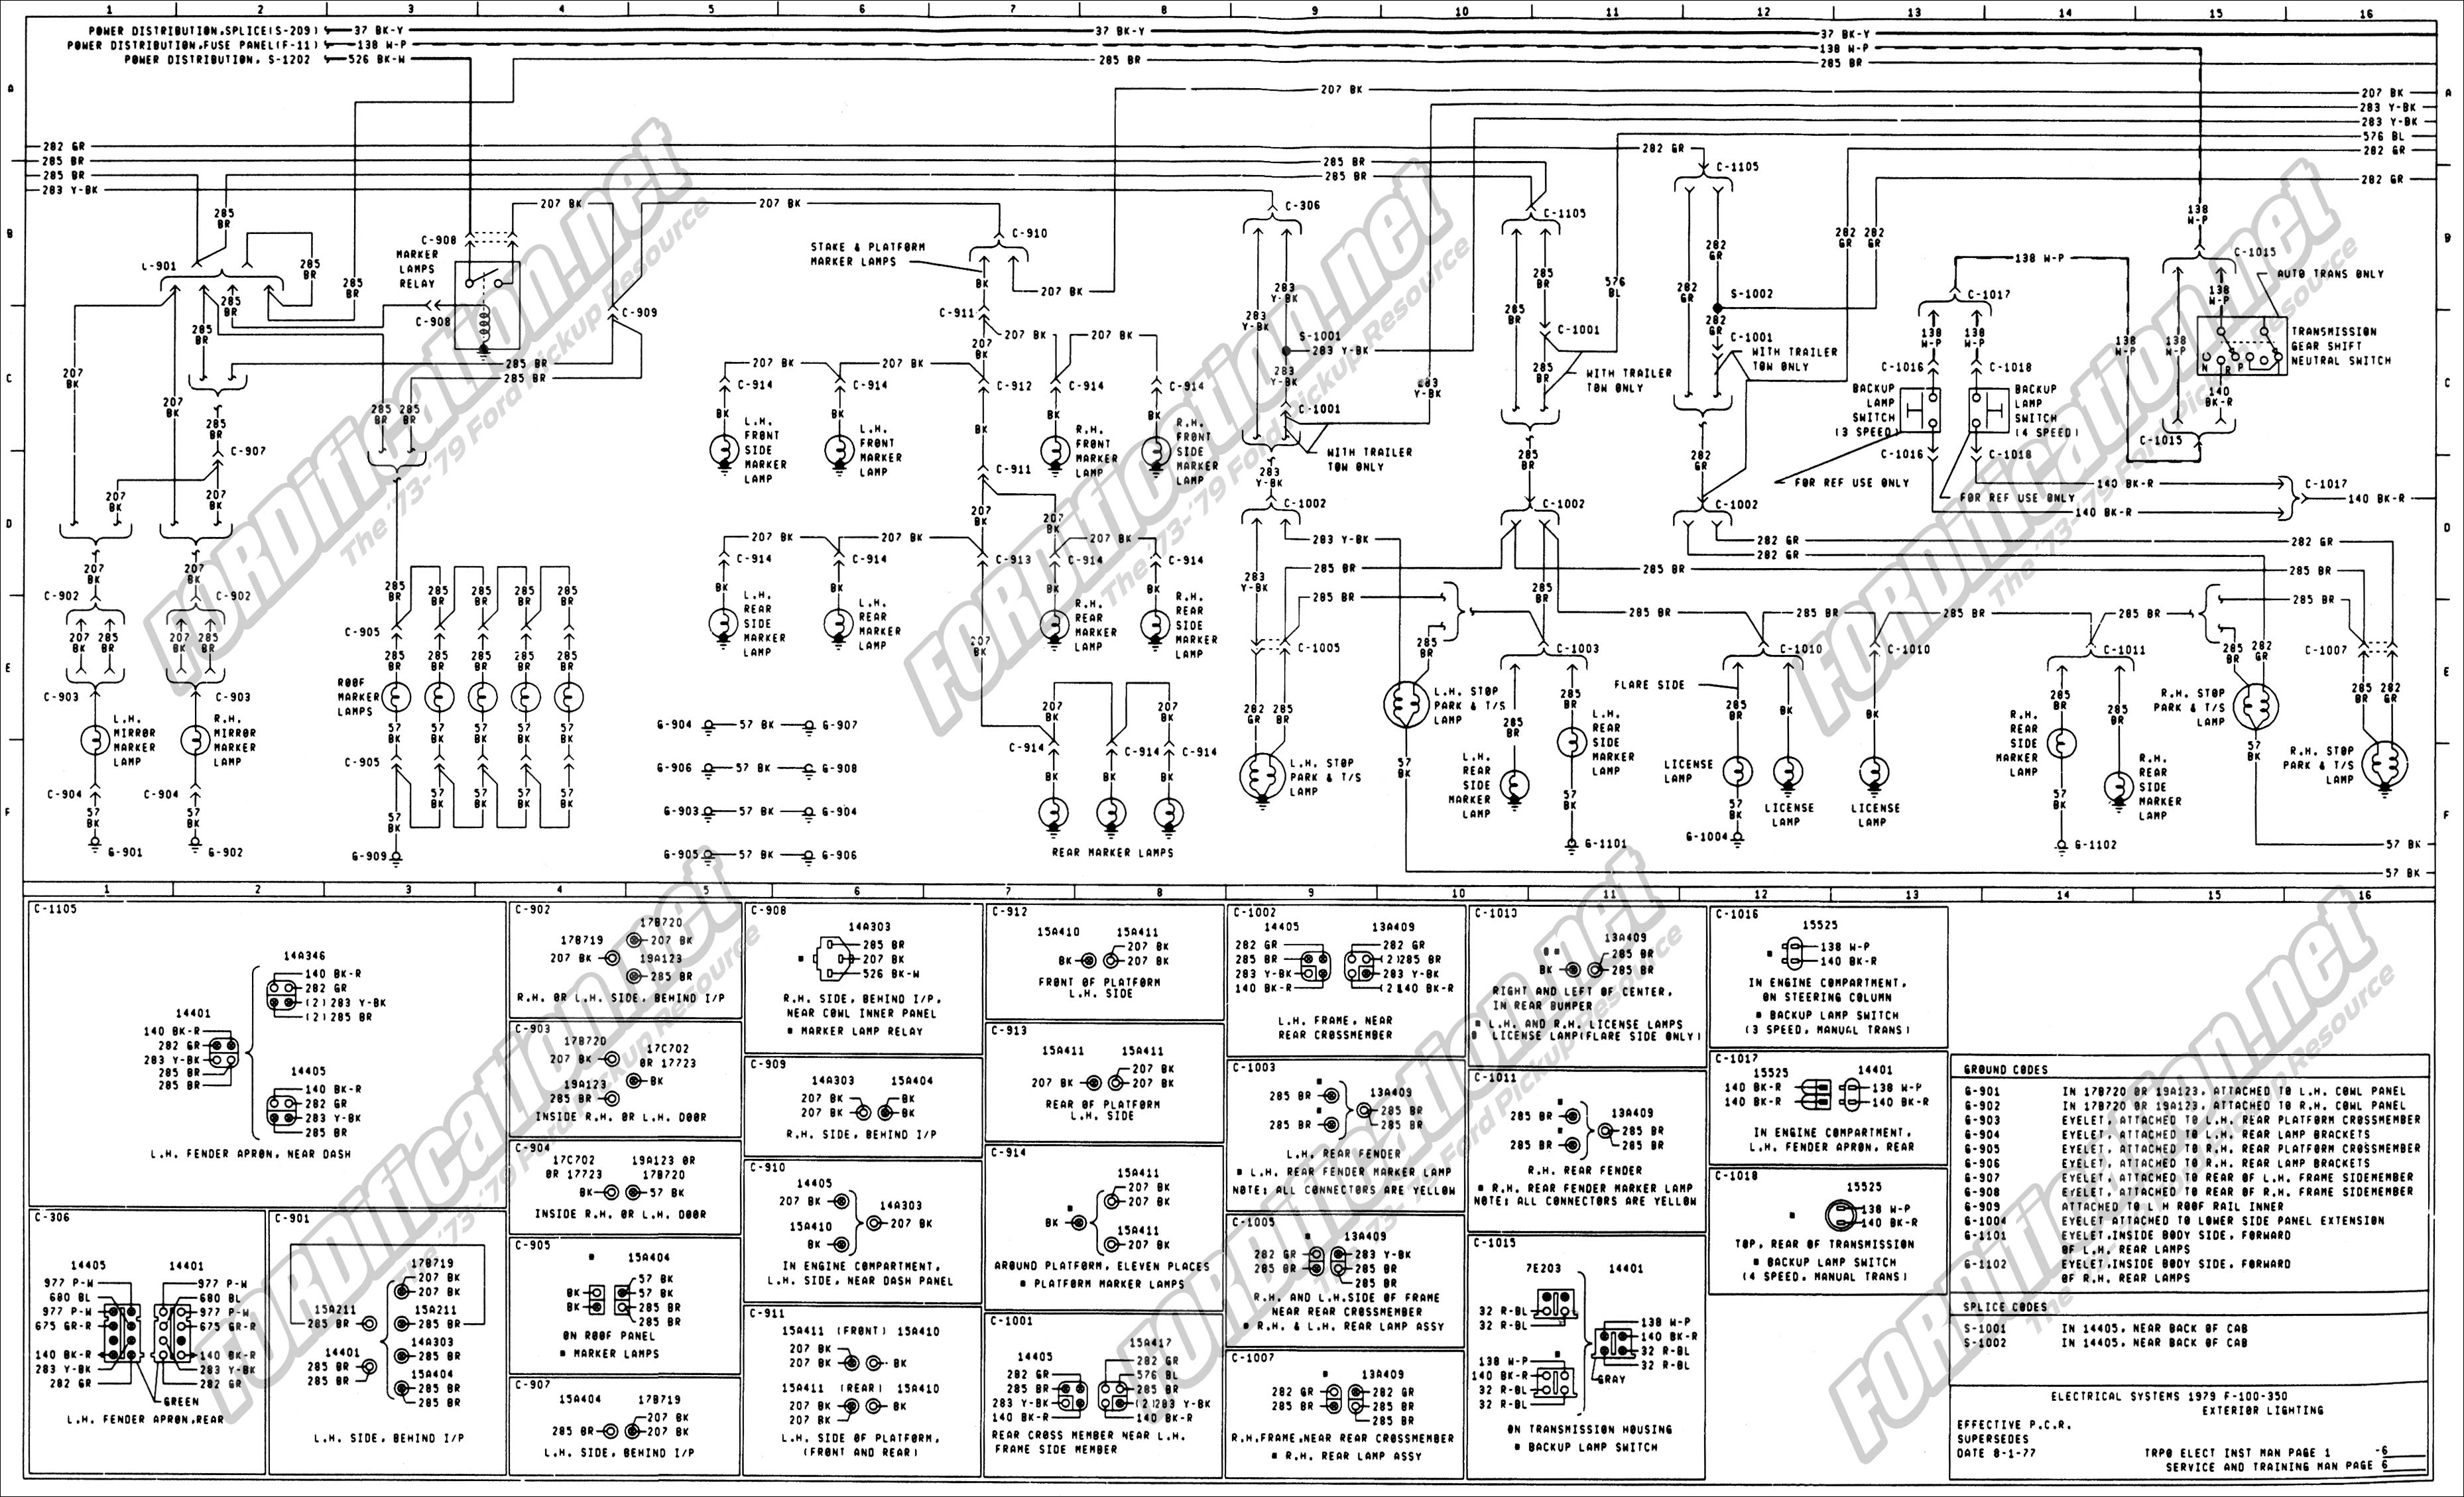 2011 Ford Escape Radio Wire Diagram 1973 1979 Ford Truck Wiring Diagrams Amp Schematics